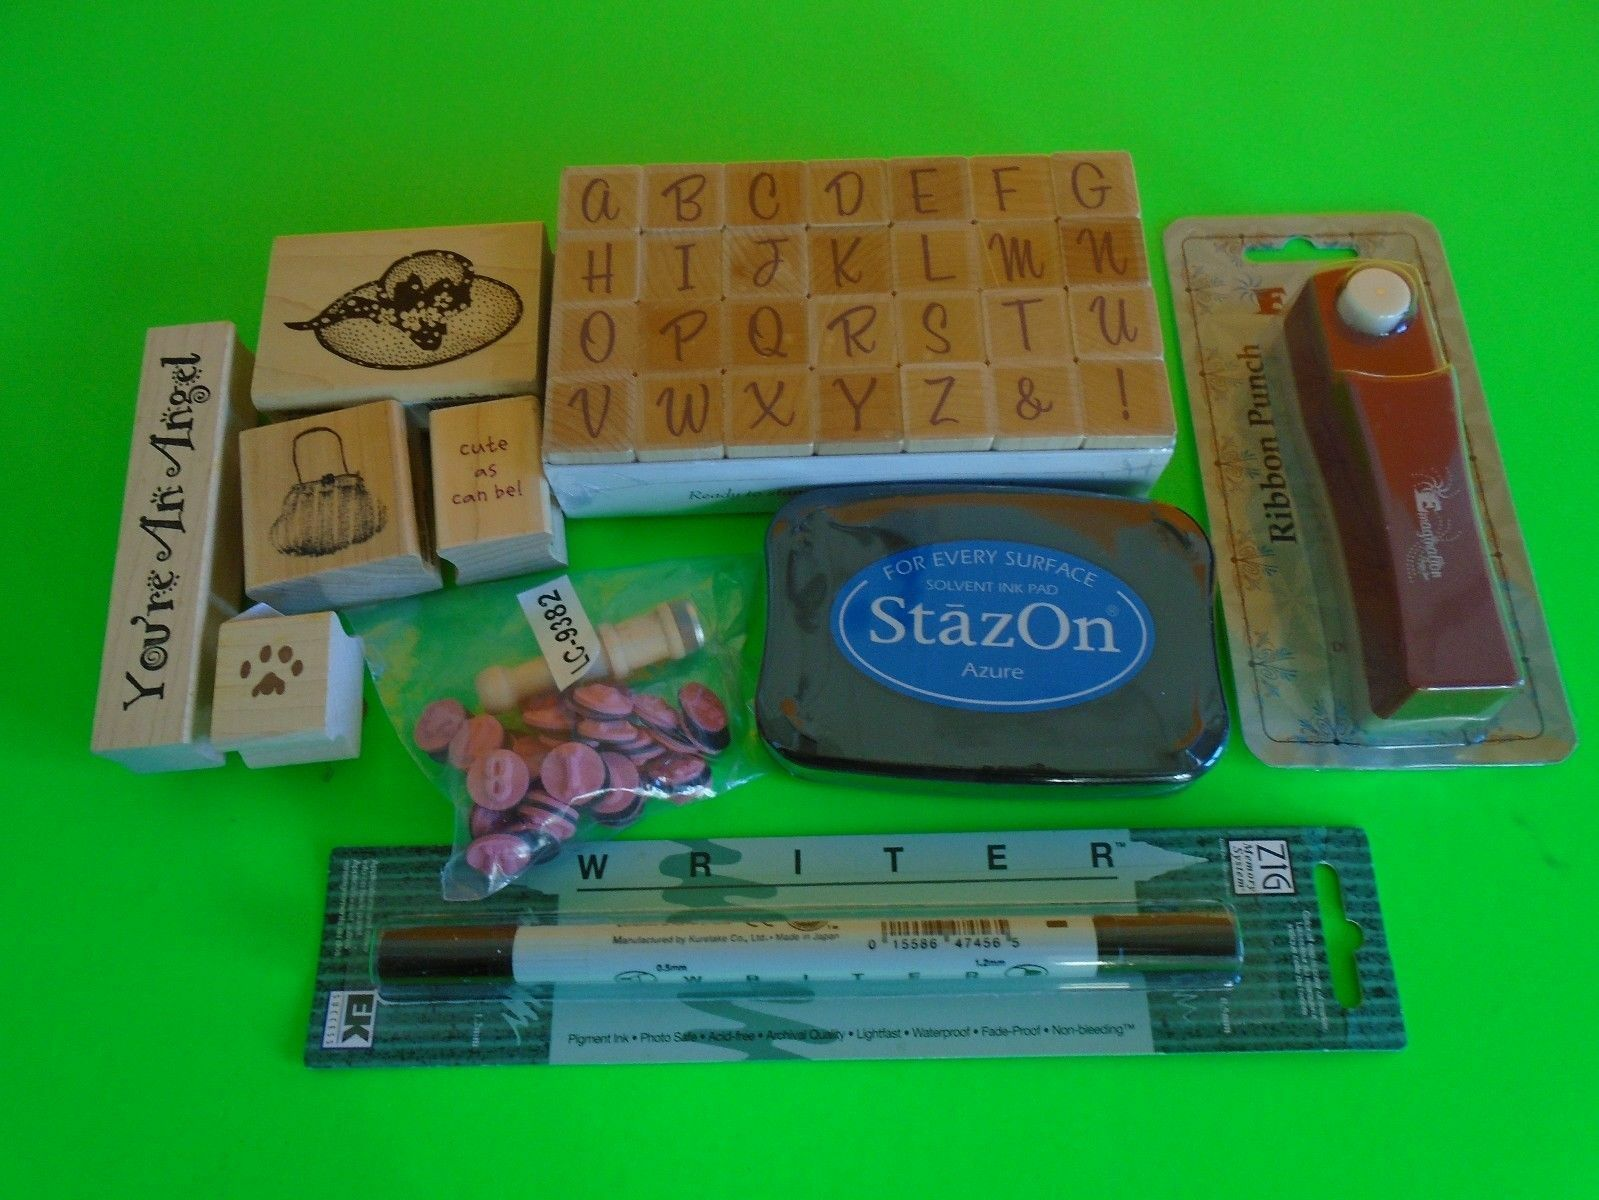 Lot Of Rubber Stamp Alphabets, Pet, Saying, Ribbon Punch Staz On Solvent Ink Pad - $14.99